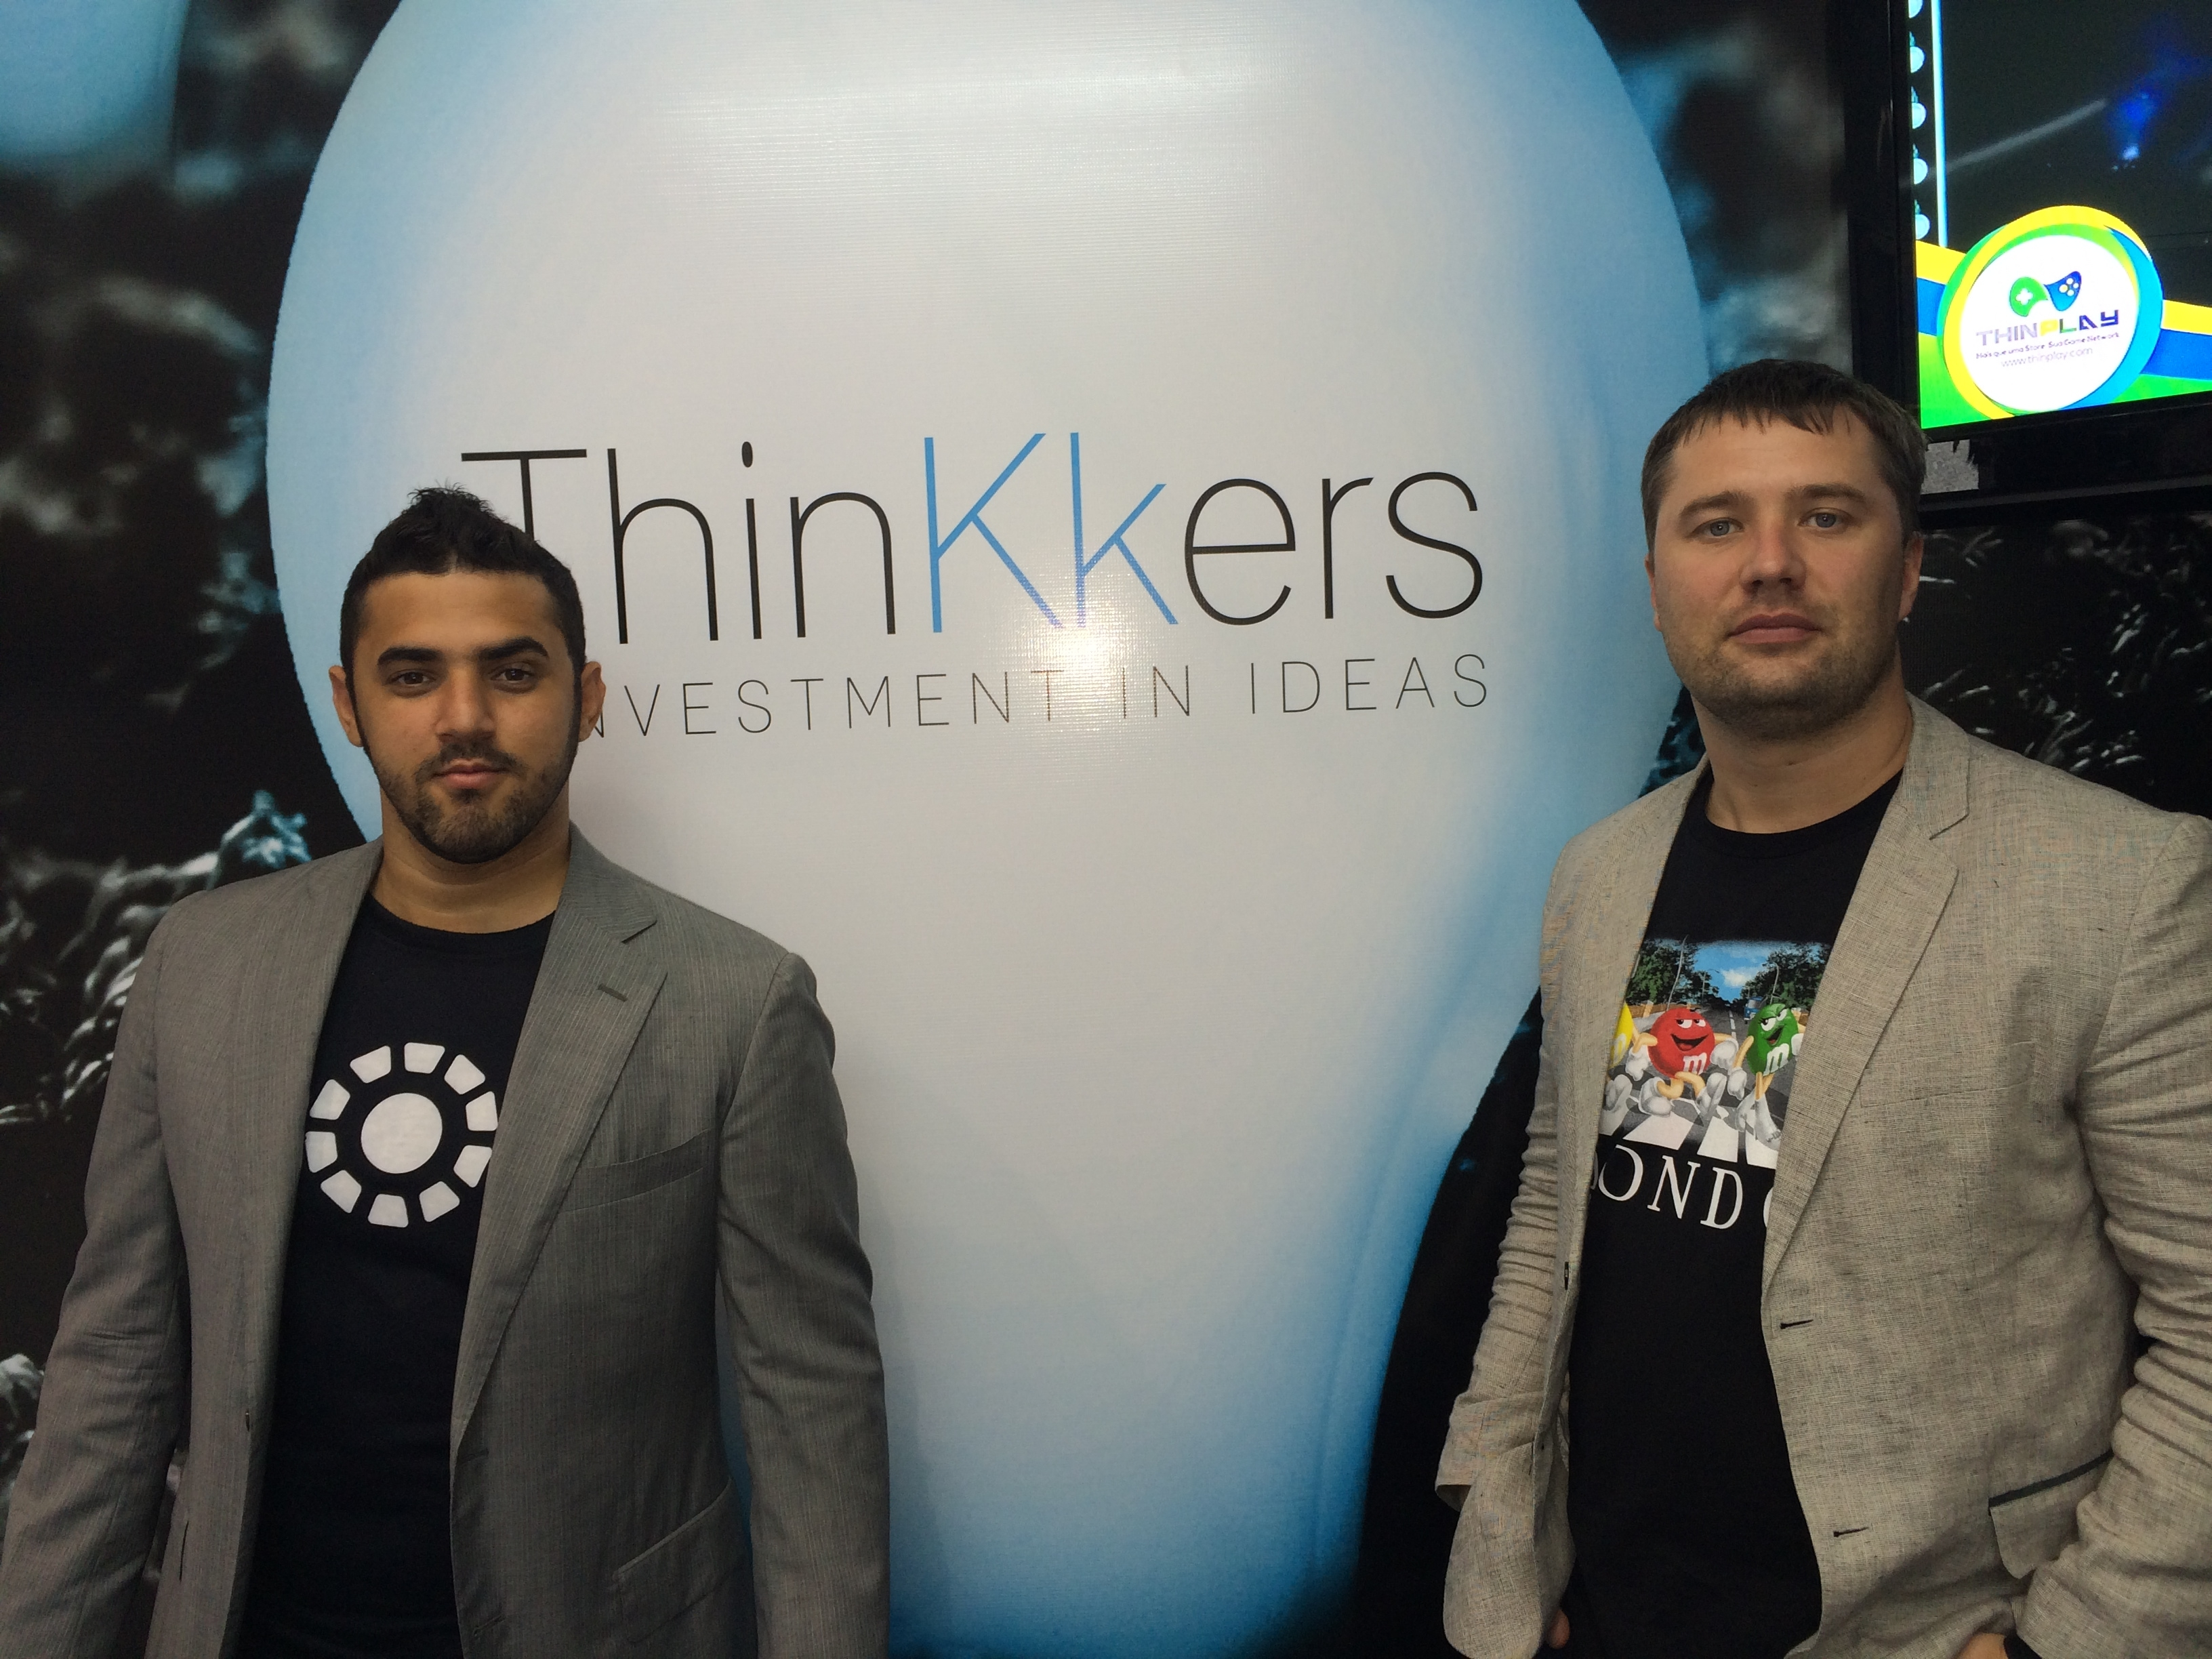 Thinkkers